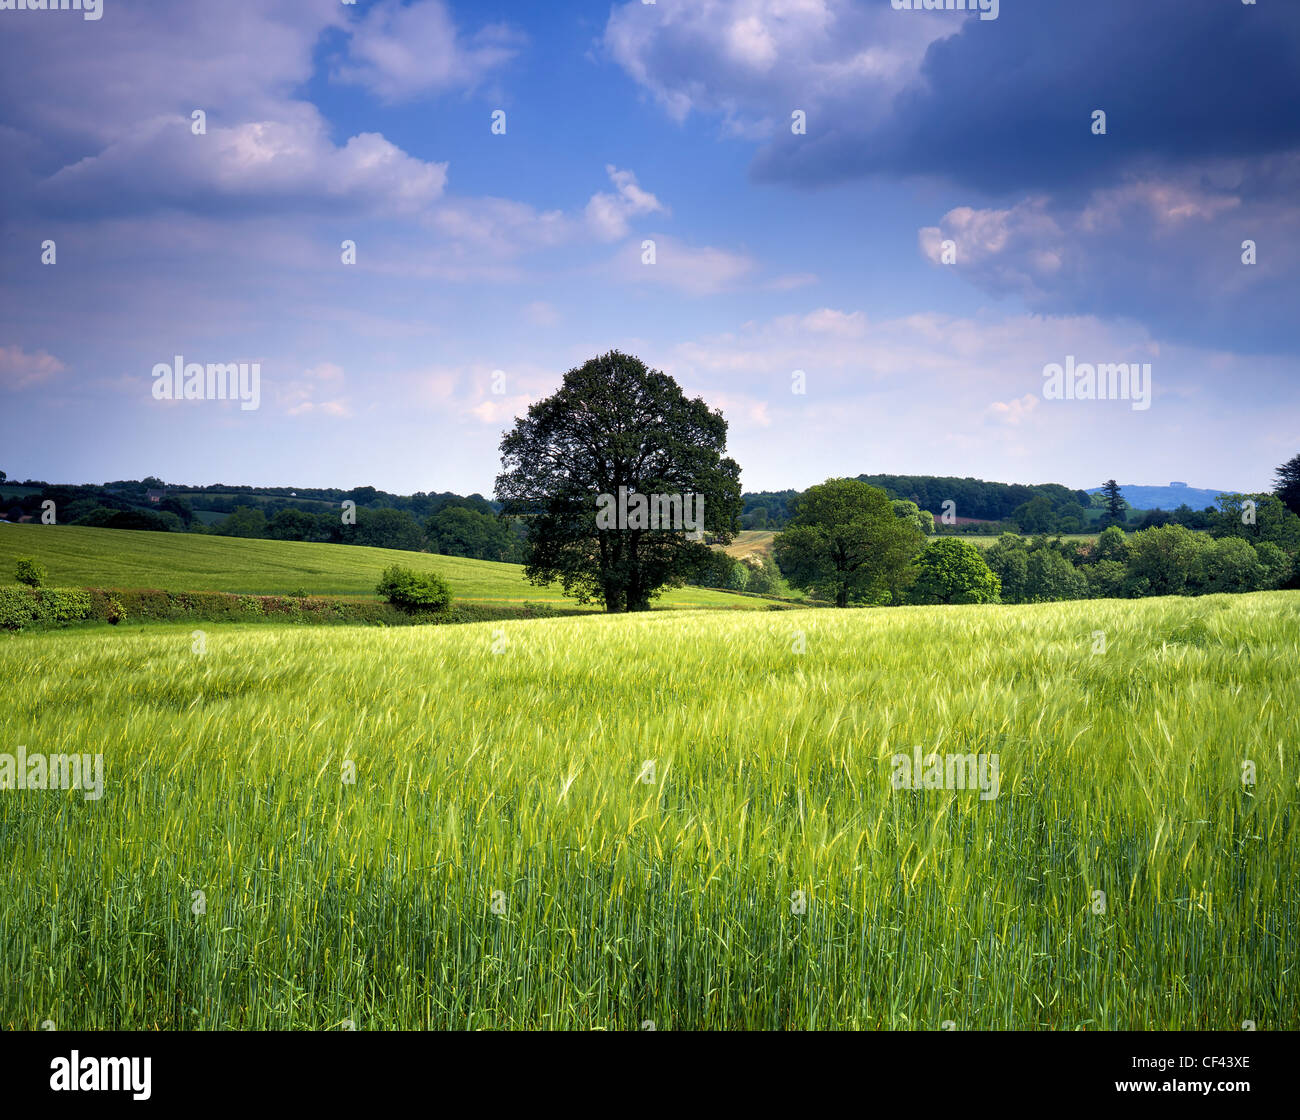 View across a fertile field of wheat early in the growing season towards wooded hills in rural Herefordshire. - Stock Image